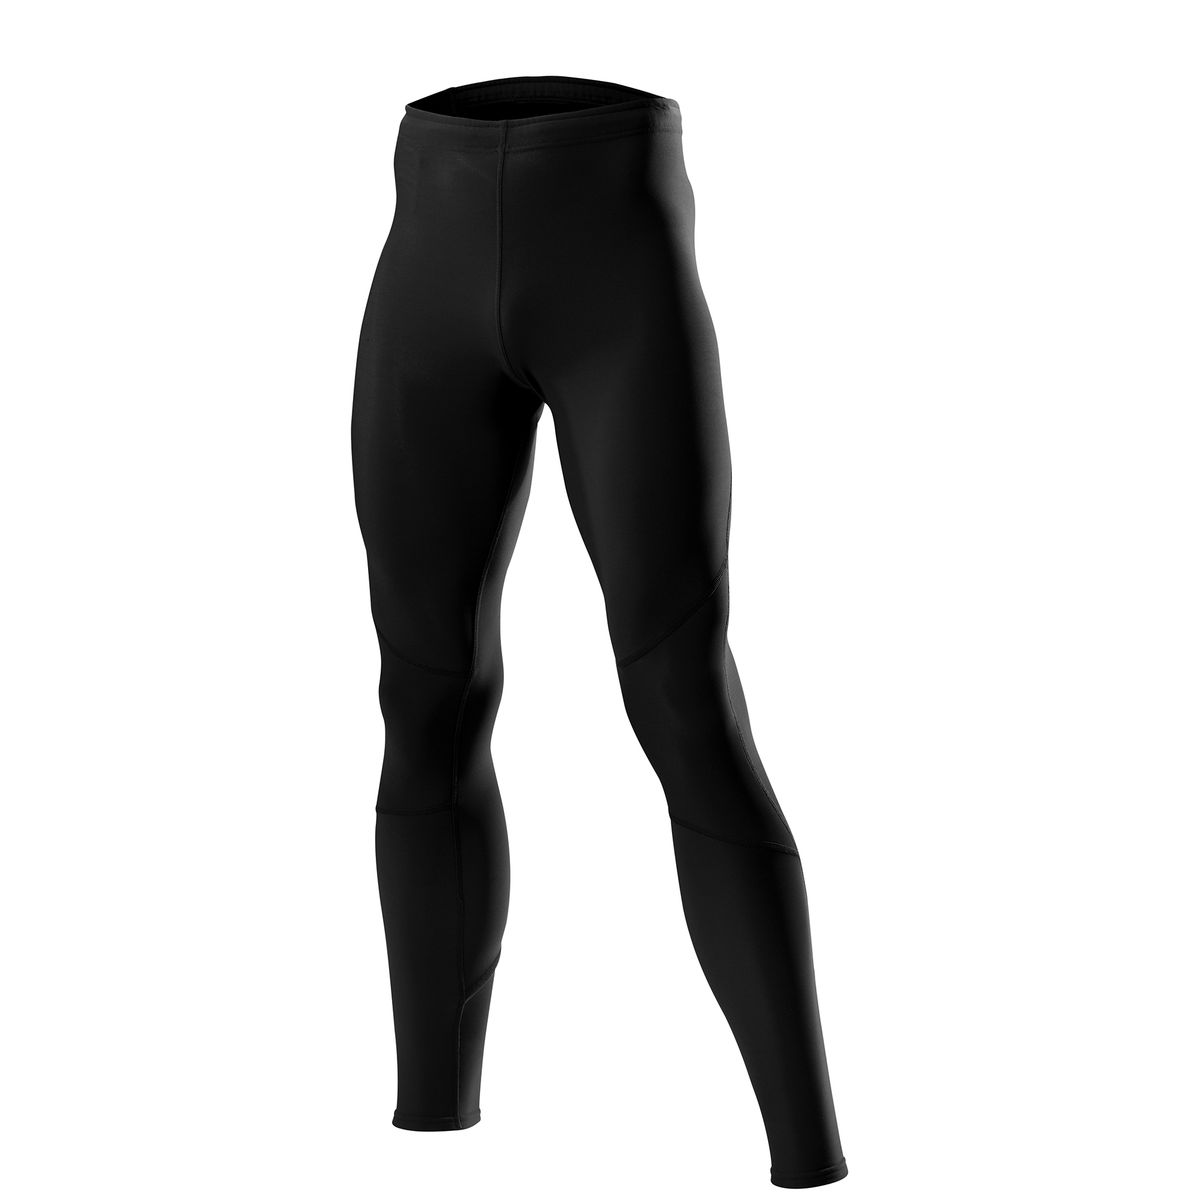 M TIGHTS EVO TIV Thermo Tights